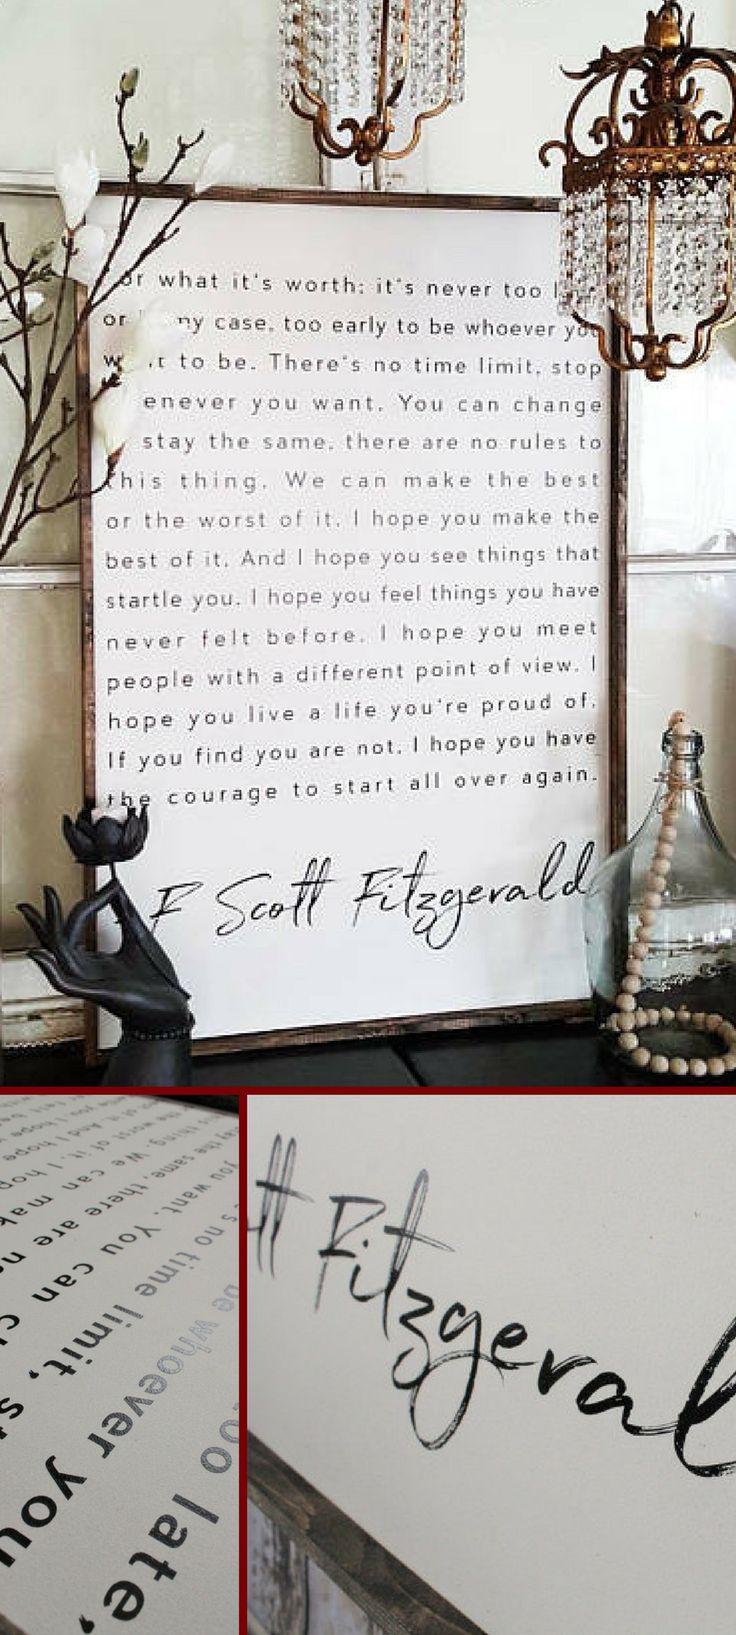 """Breathtaking! """"For what it's worth, it's never too late, or in my case, too early to be whatever you want to be"""" F. Scott Fitzgerald Wood Sign. Inspiring Quotes. Rustic Decor. Fixer Upper. Modern Farmhouse. Farmhouse Decor. Housewarming gift. #ad"""